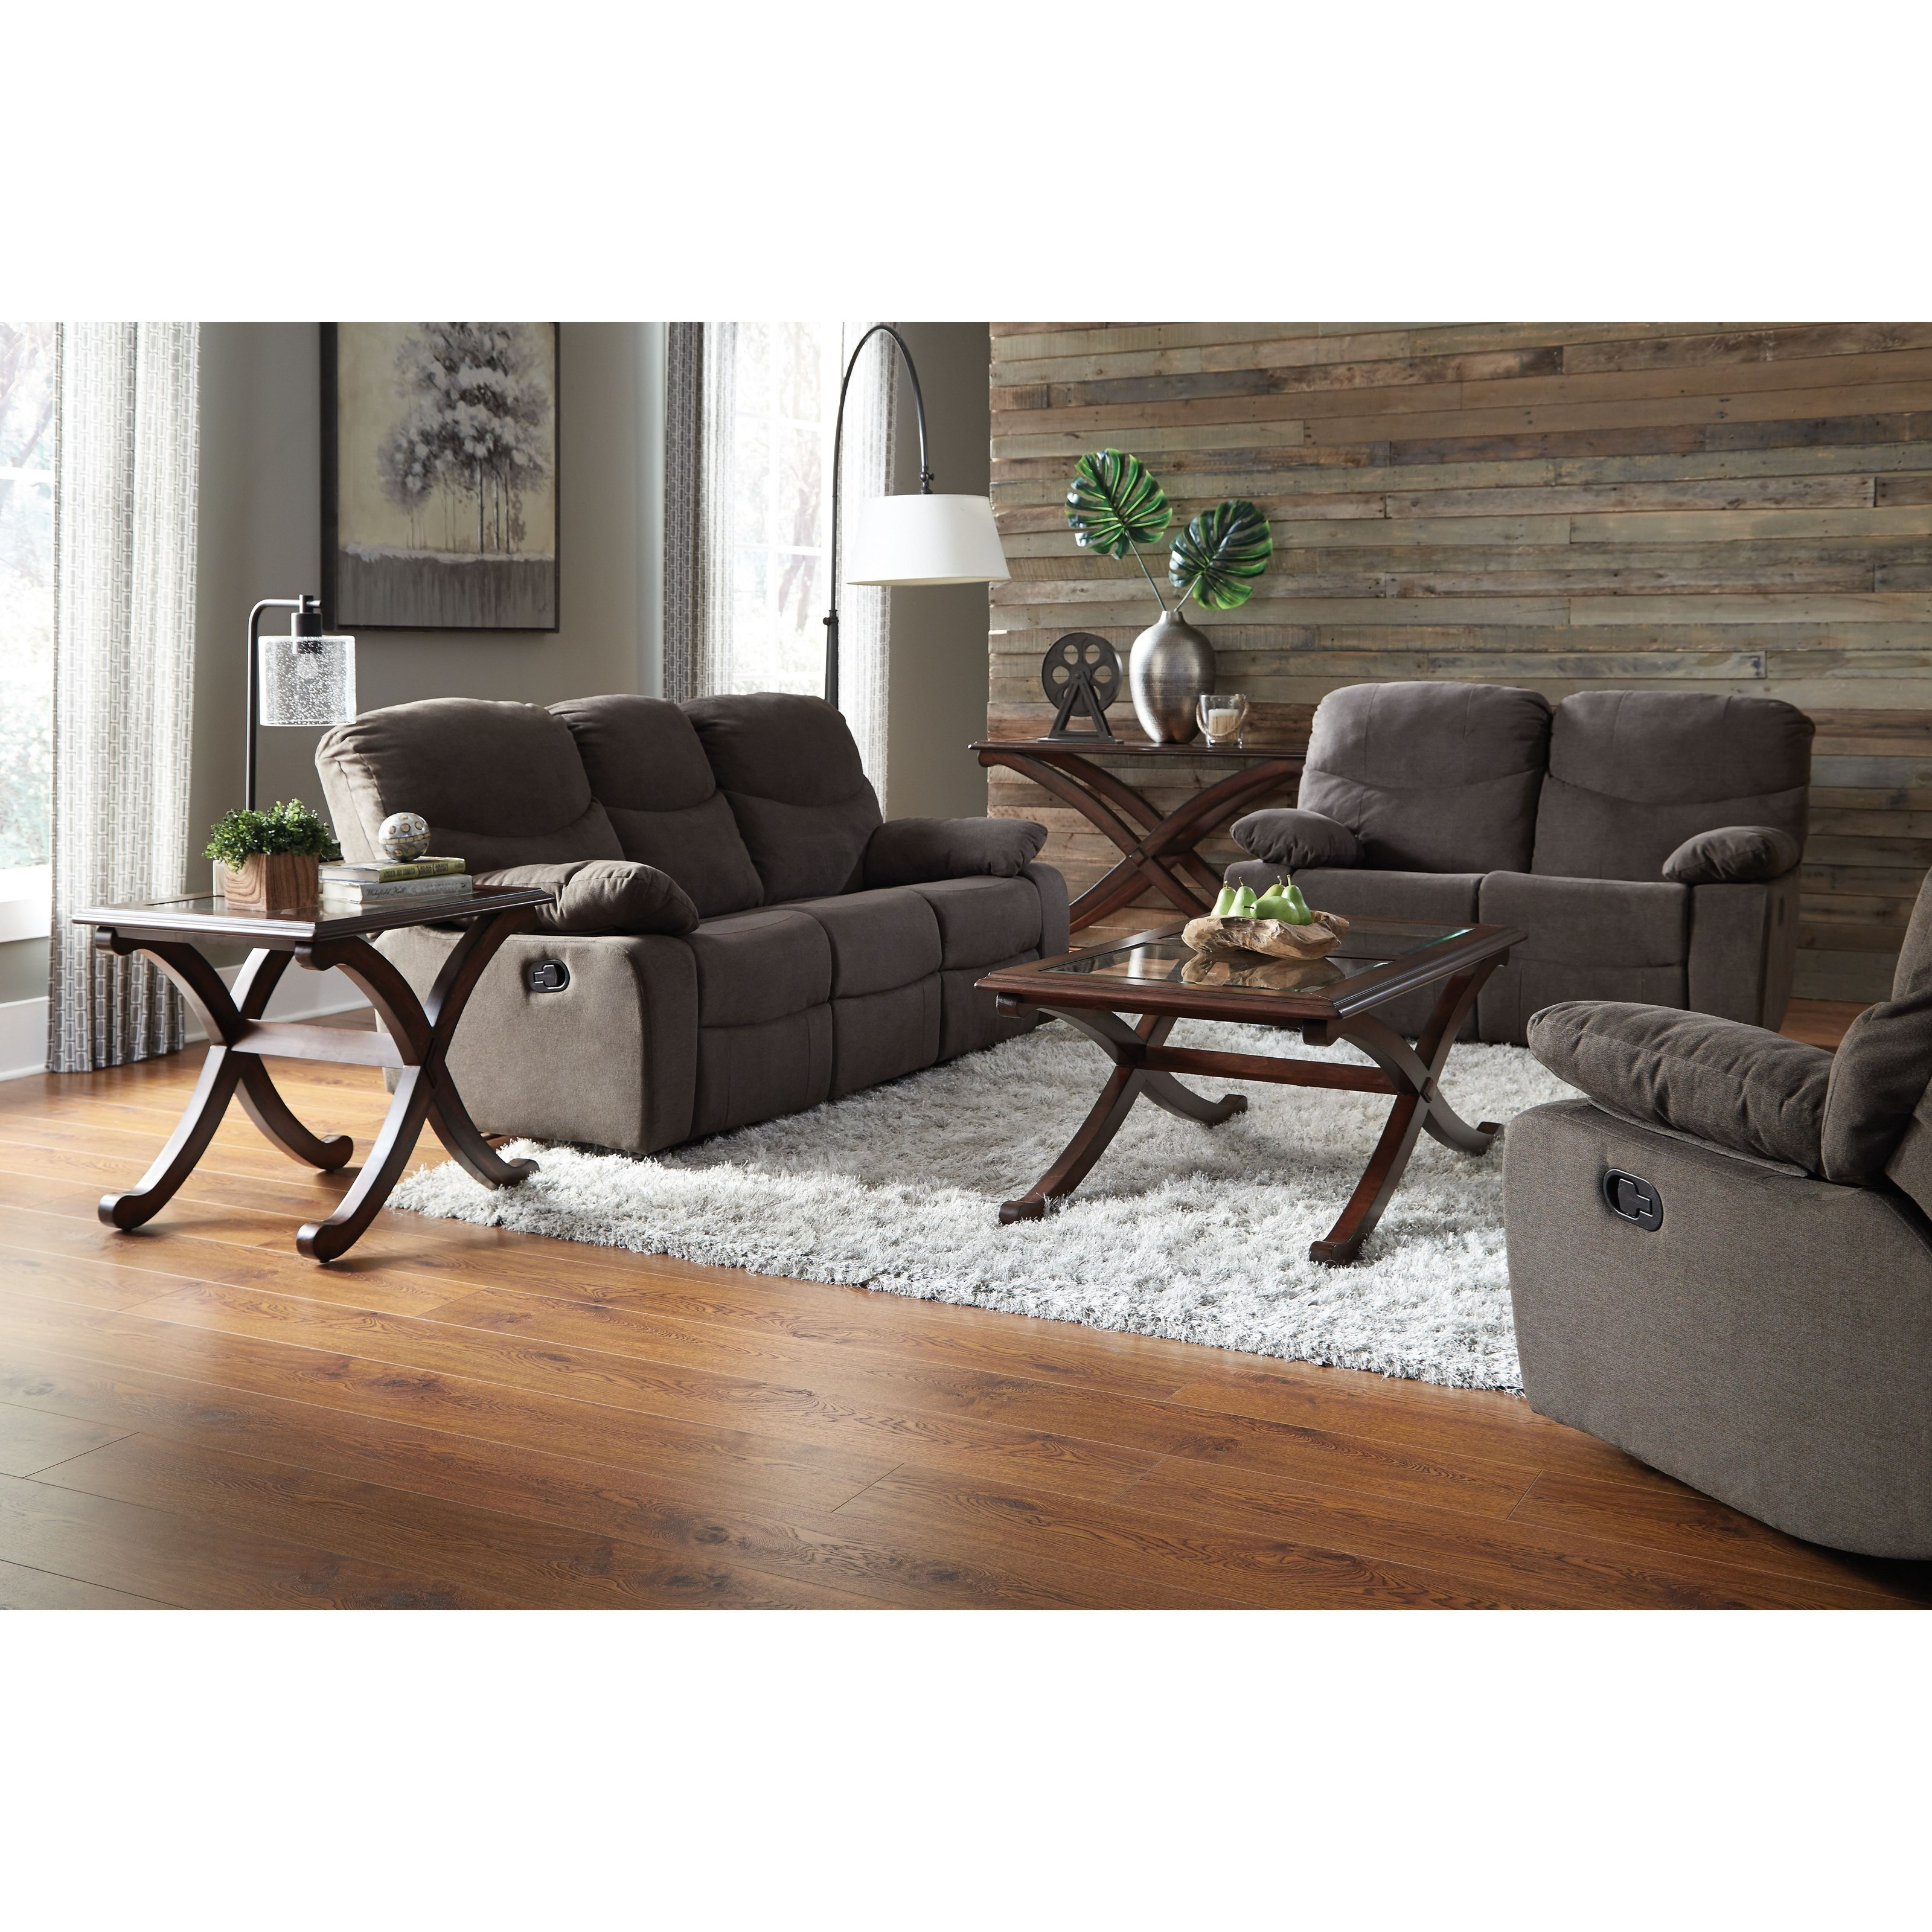 418 Best Slipcovers Images On 100 Images The Klippan Loveseat Cover Replacement Is Custom